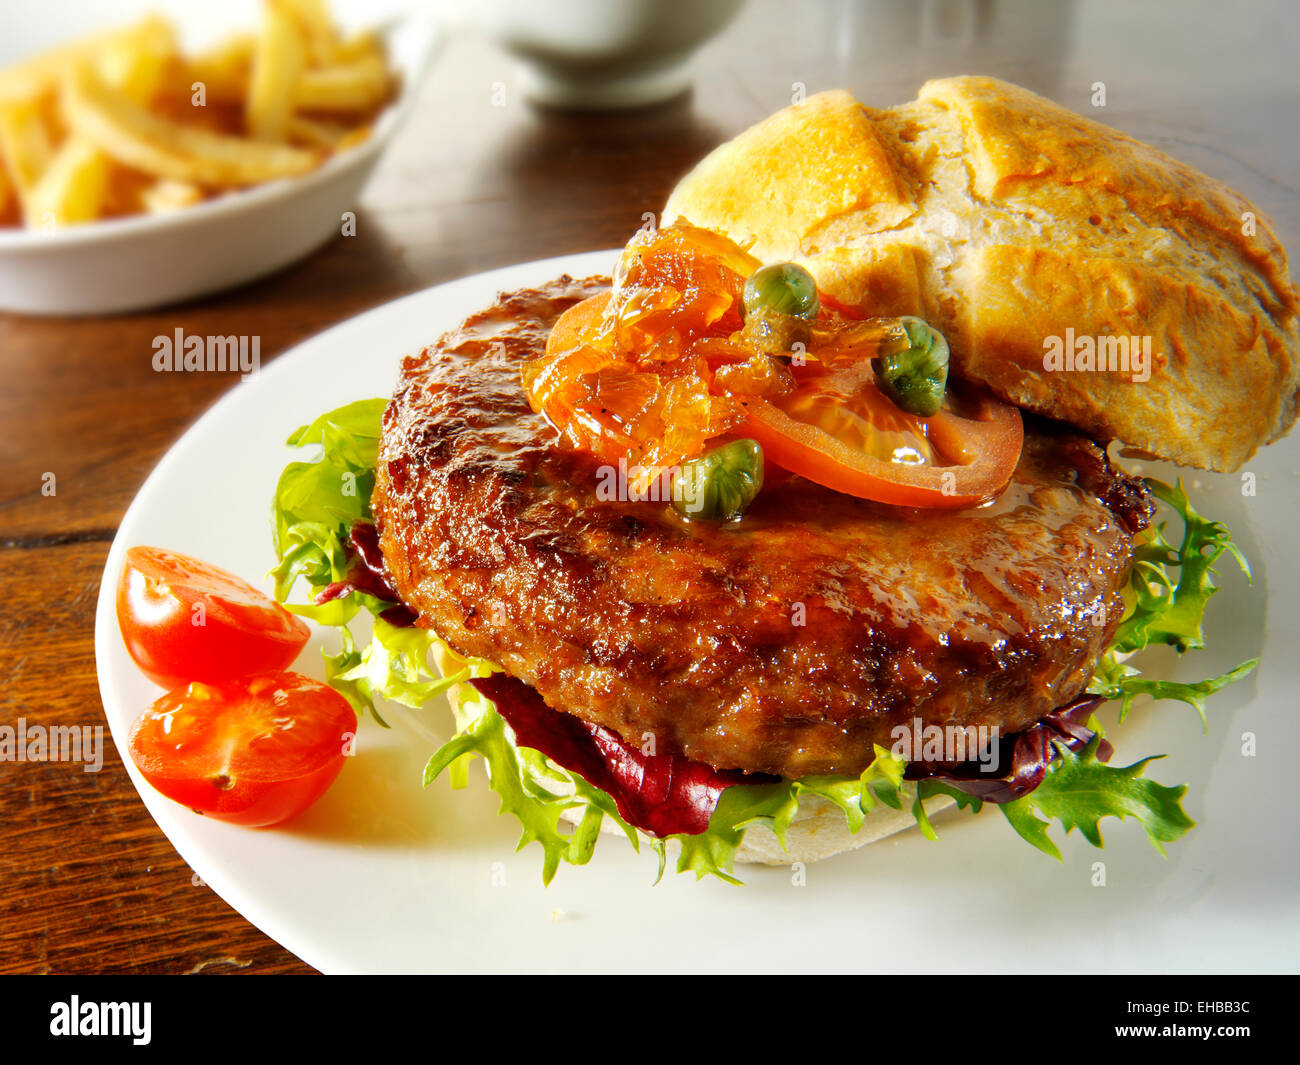 Beef burger with in a bun with salad, fries and relish - Stock Image